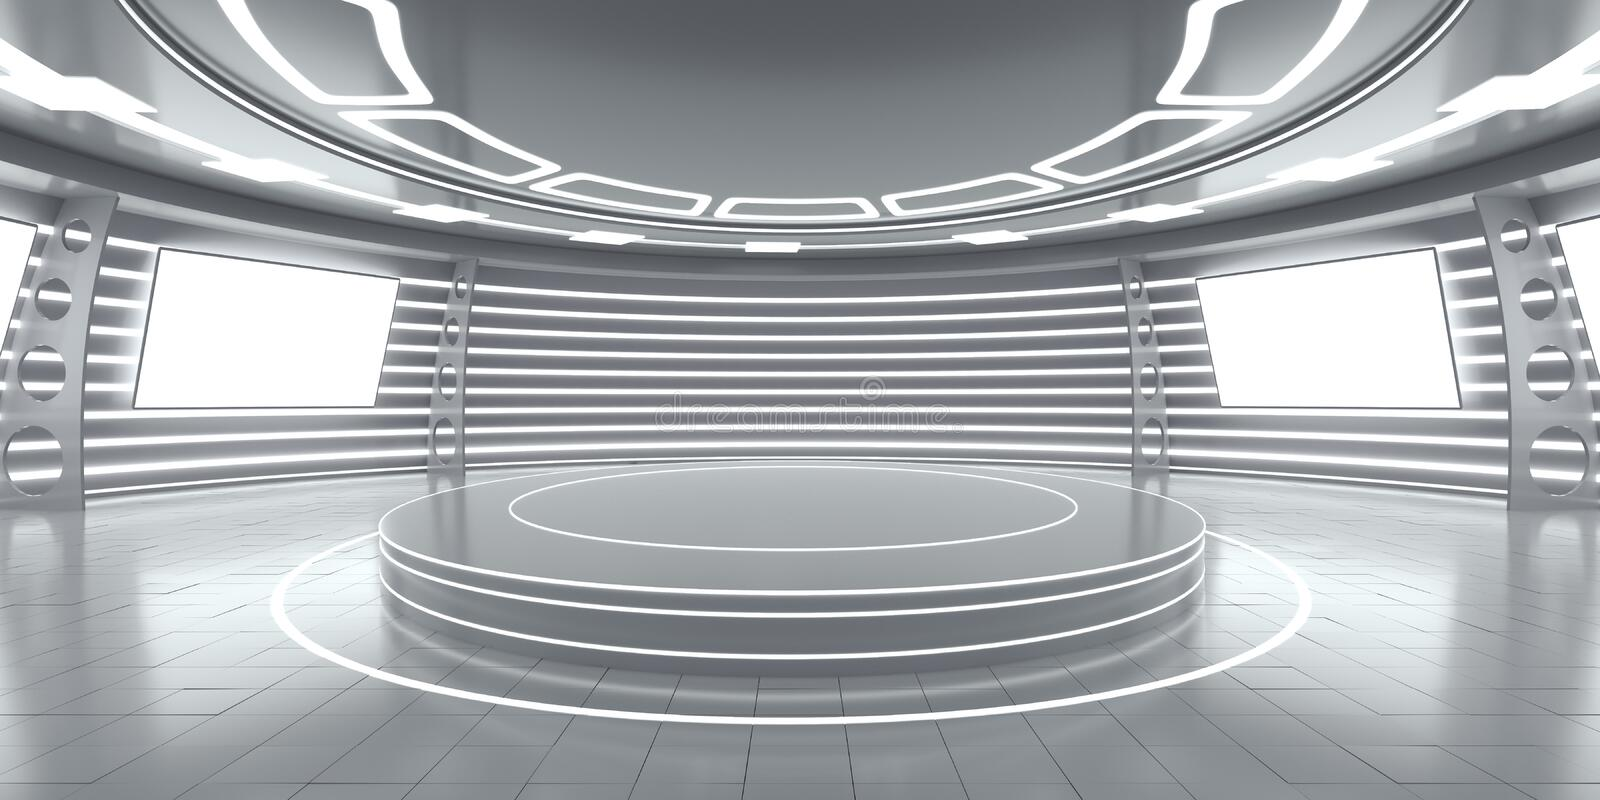 Abstract futuristic interior with glowing panels royalty free stock photo